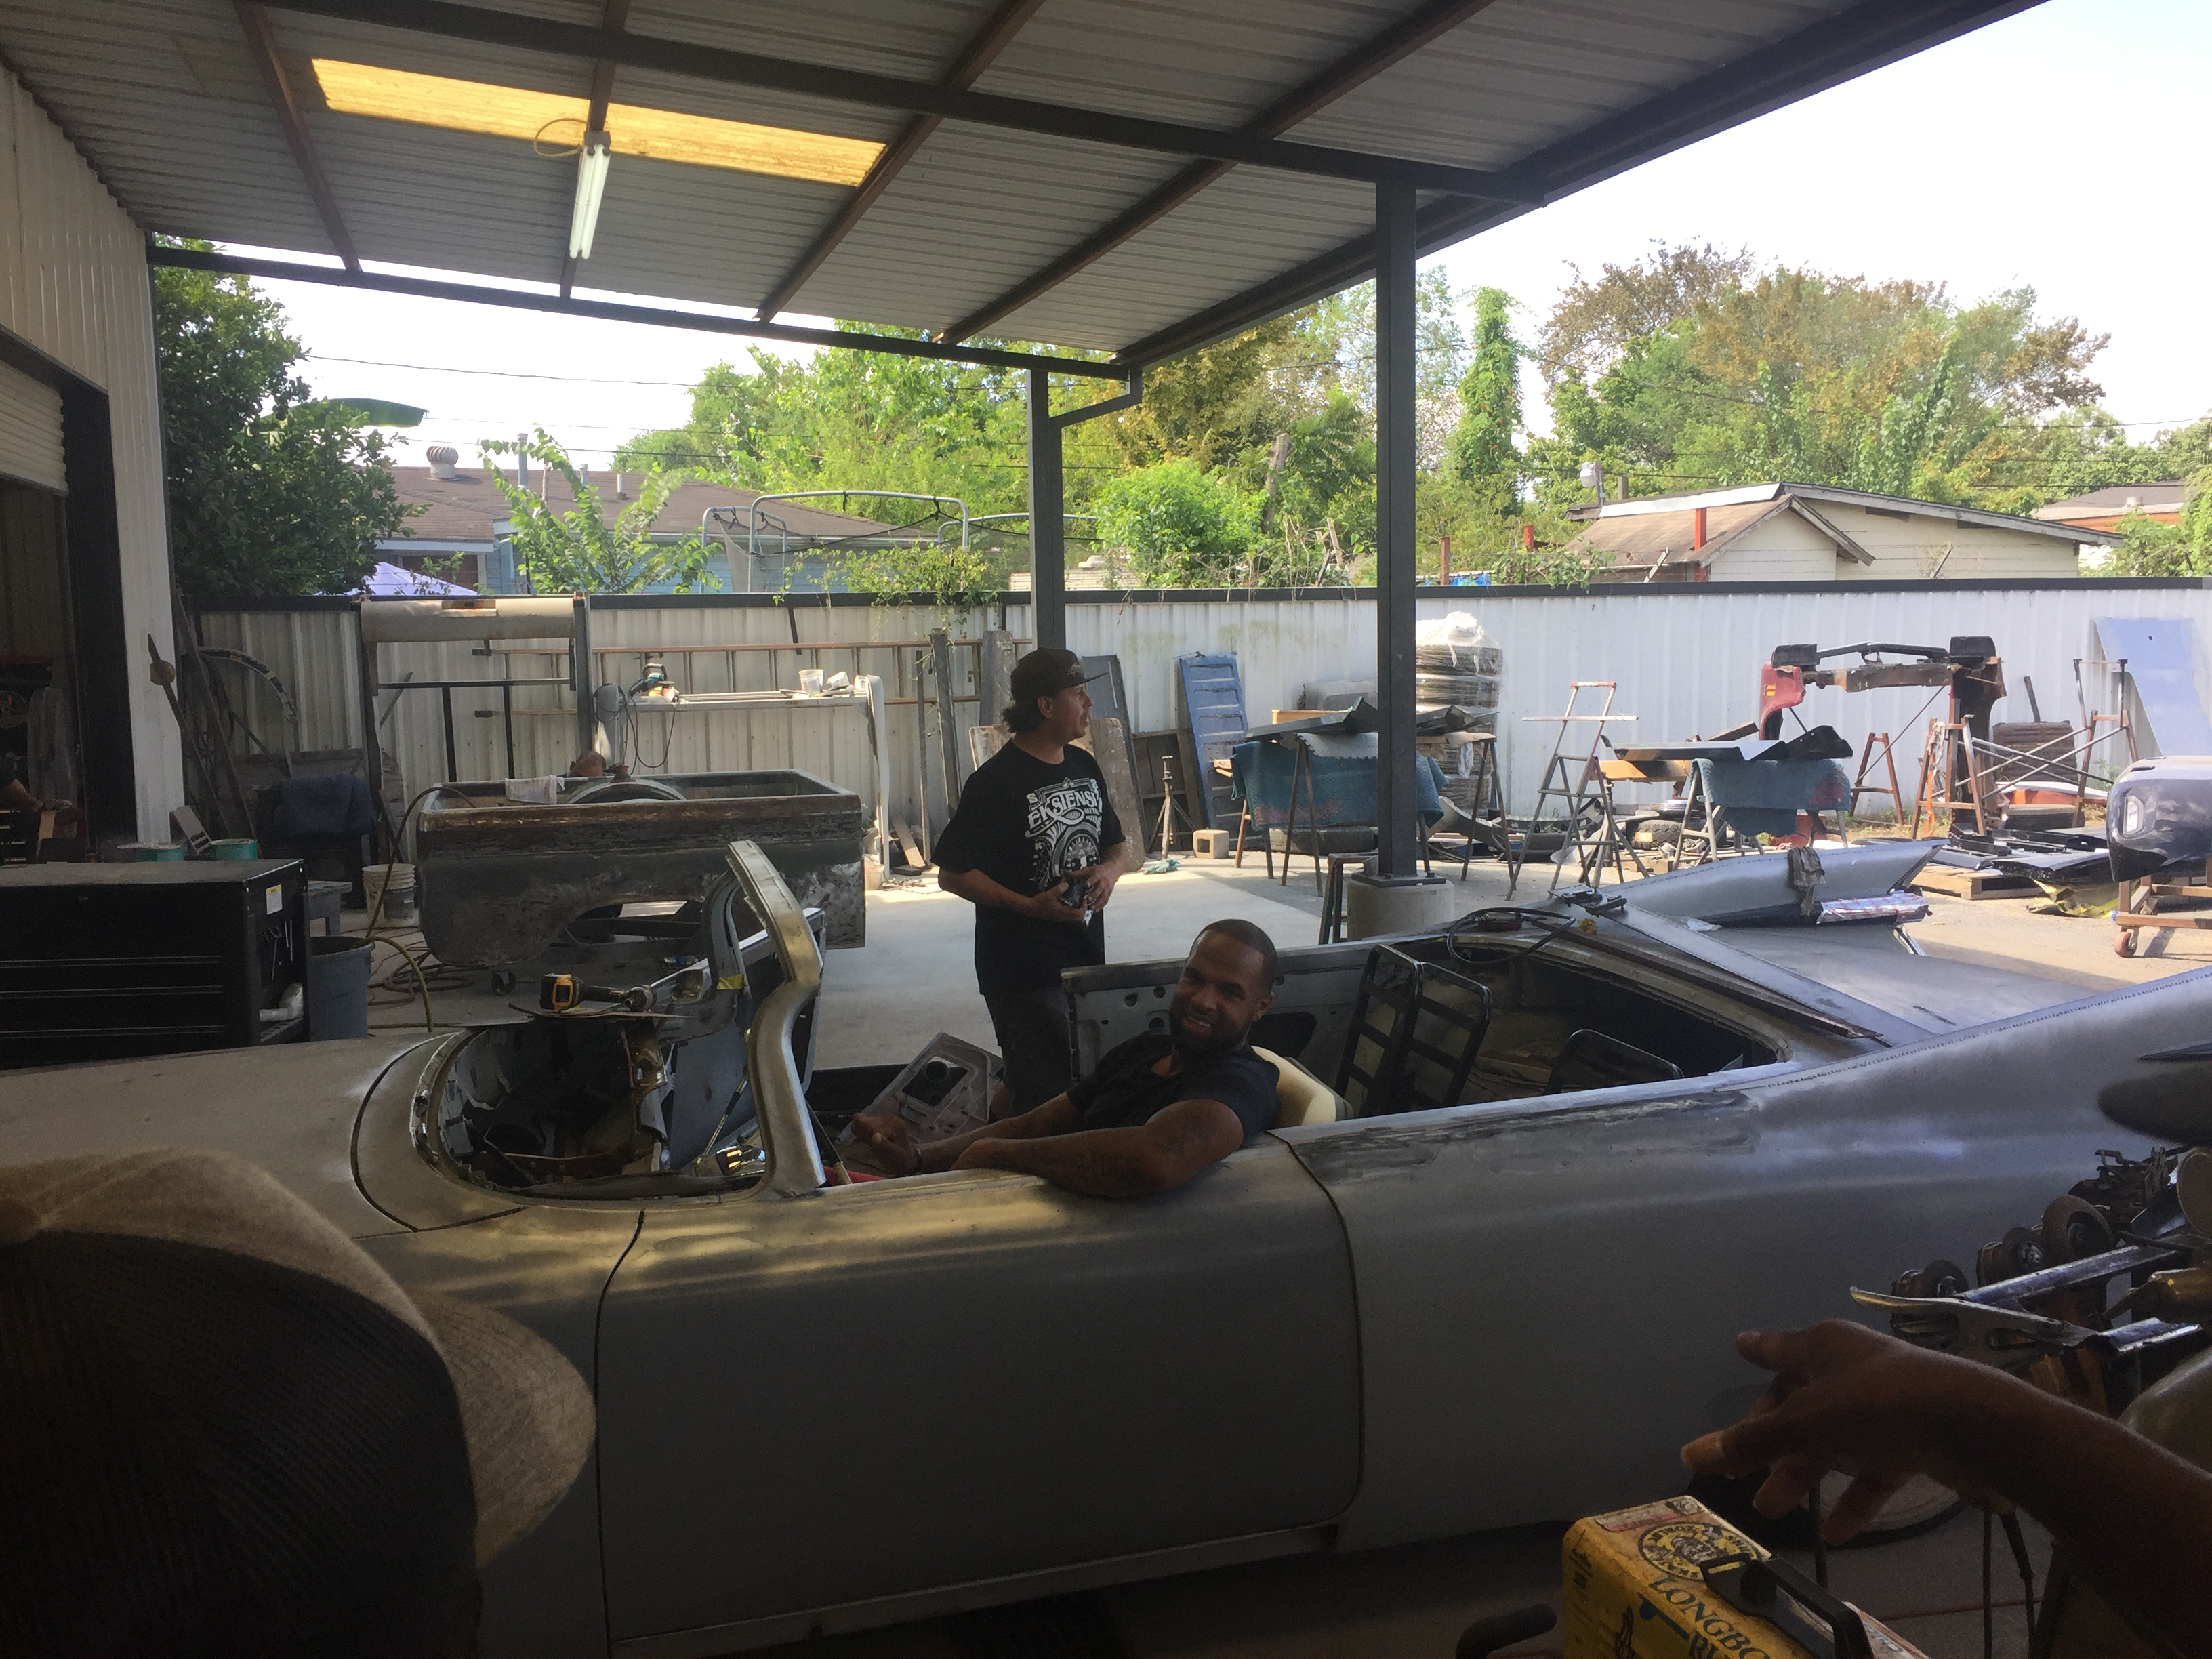 test fitting the new convertible Caddy - Slim Thugs 1959 Cadillac - Texas Metal